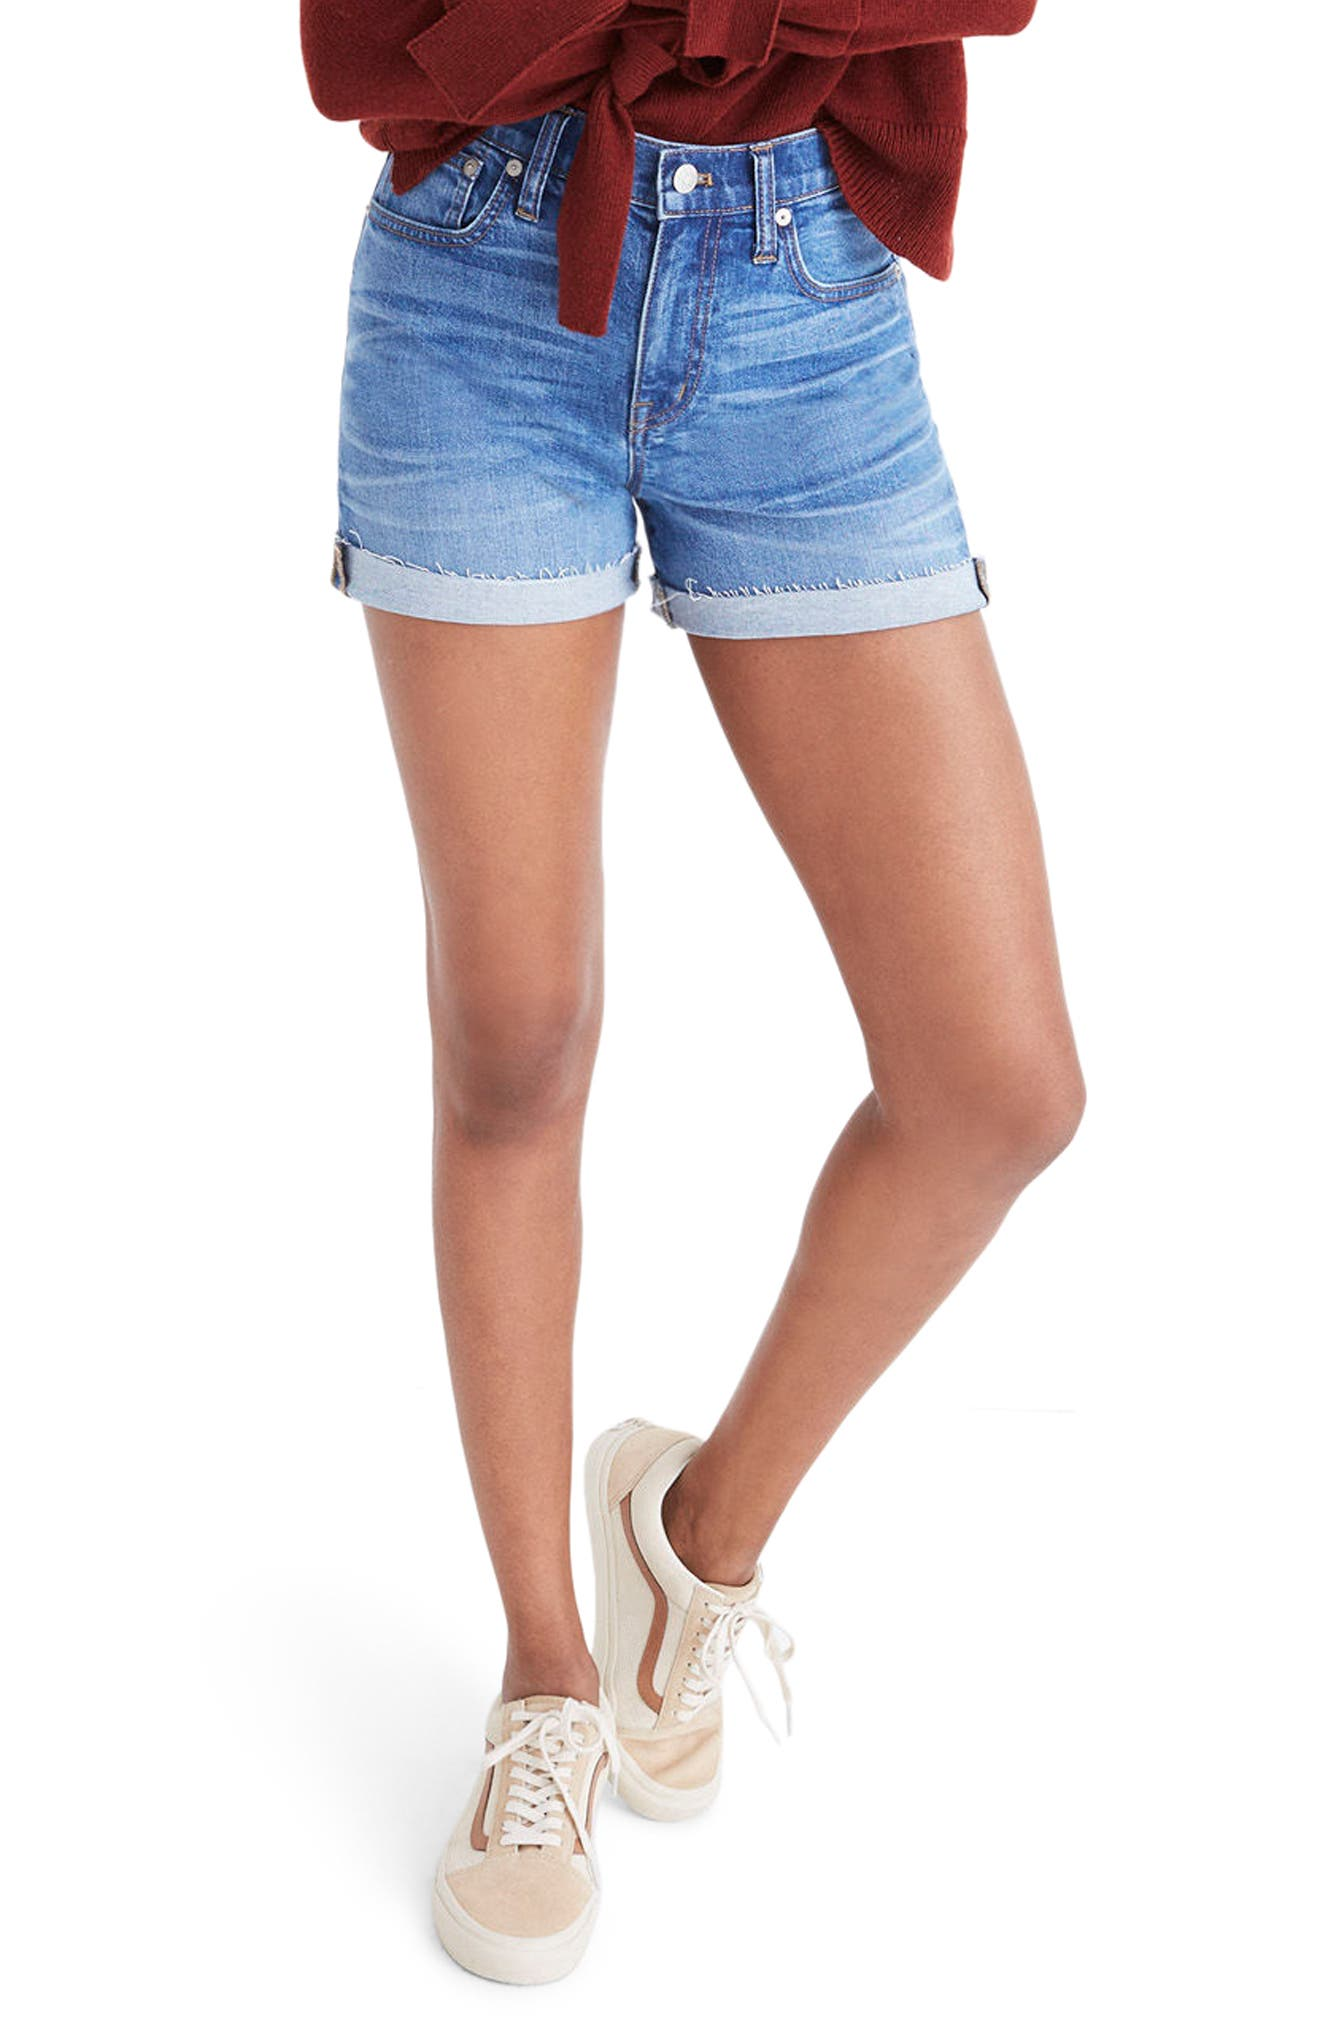 Alternate Image 1 Selected - Madewell High Rise Denim Shorts (Maloney)